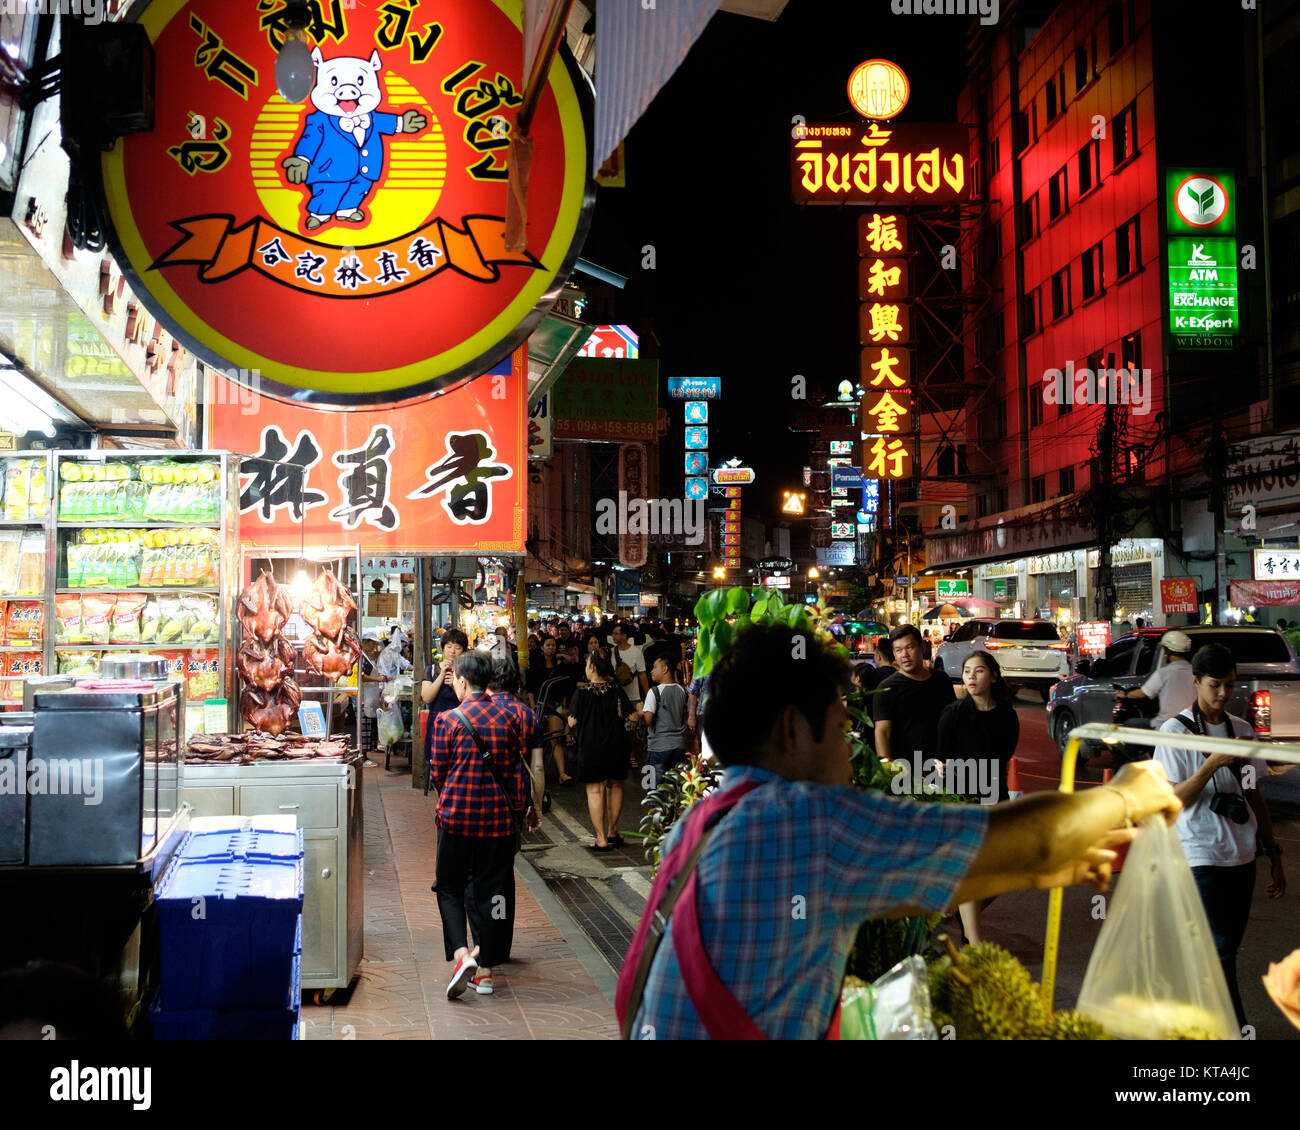 A street vendor sells Durian on the Yaorawat Road in Bangkok's Chinatown, crispy duck and neon signs very typical - Stock Image